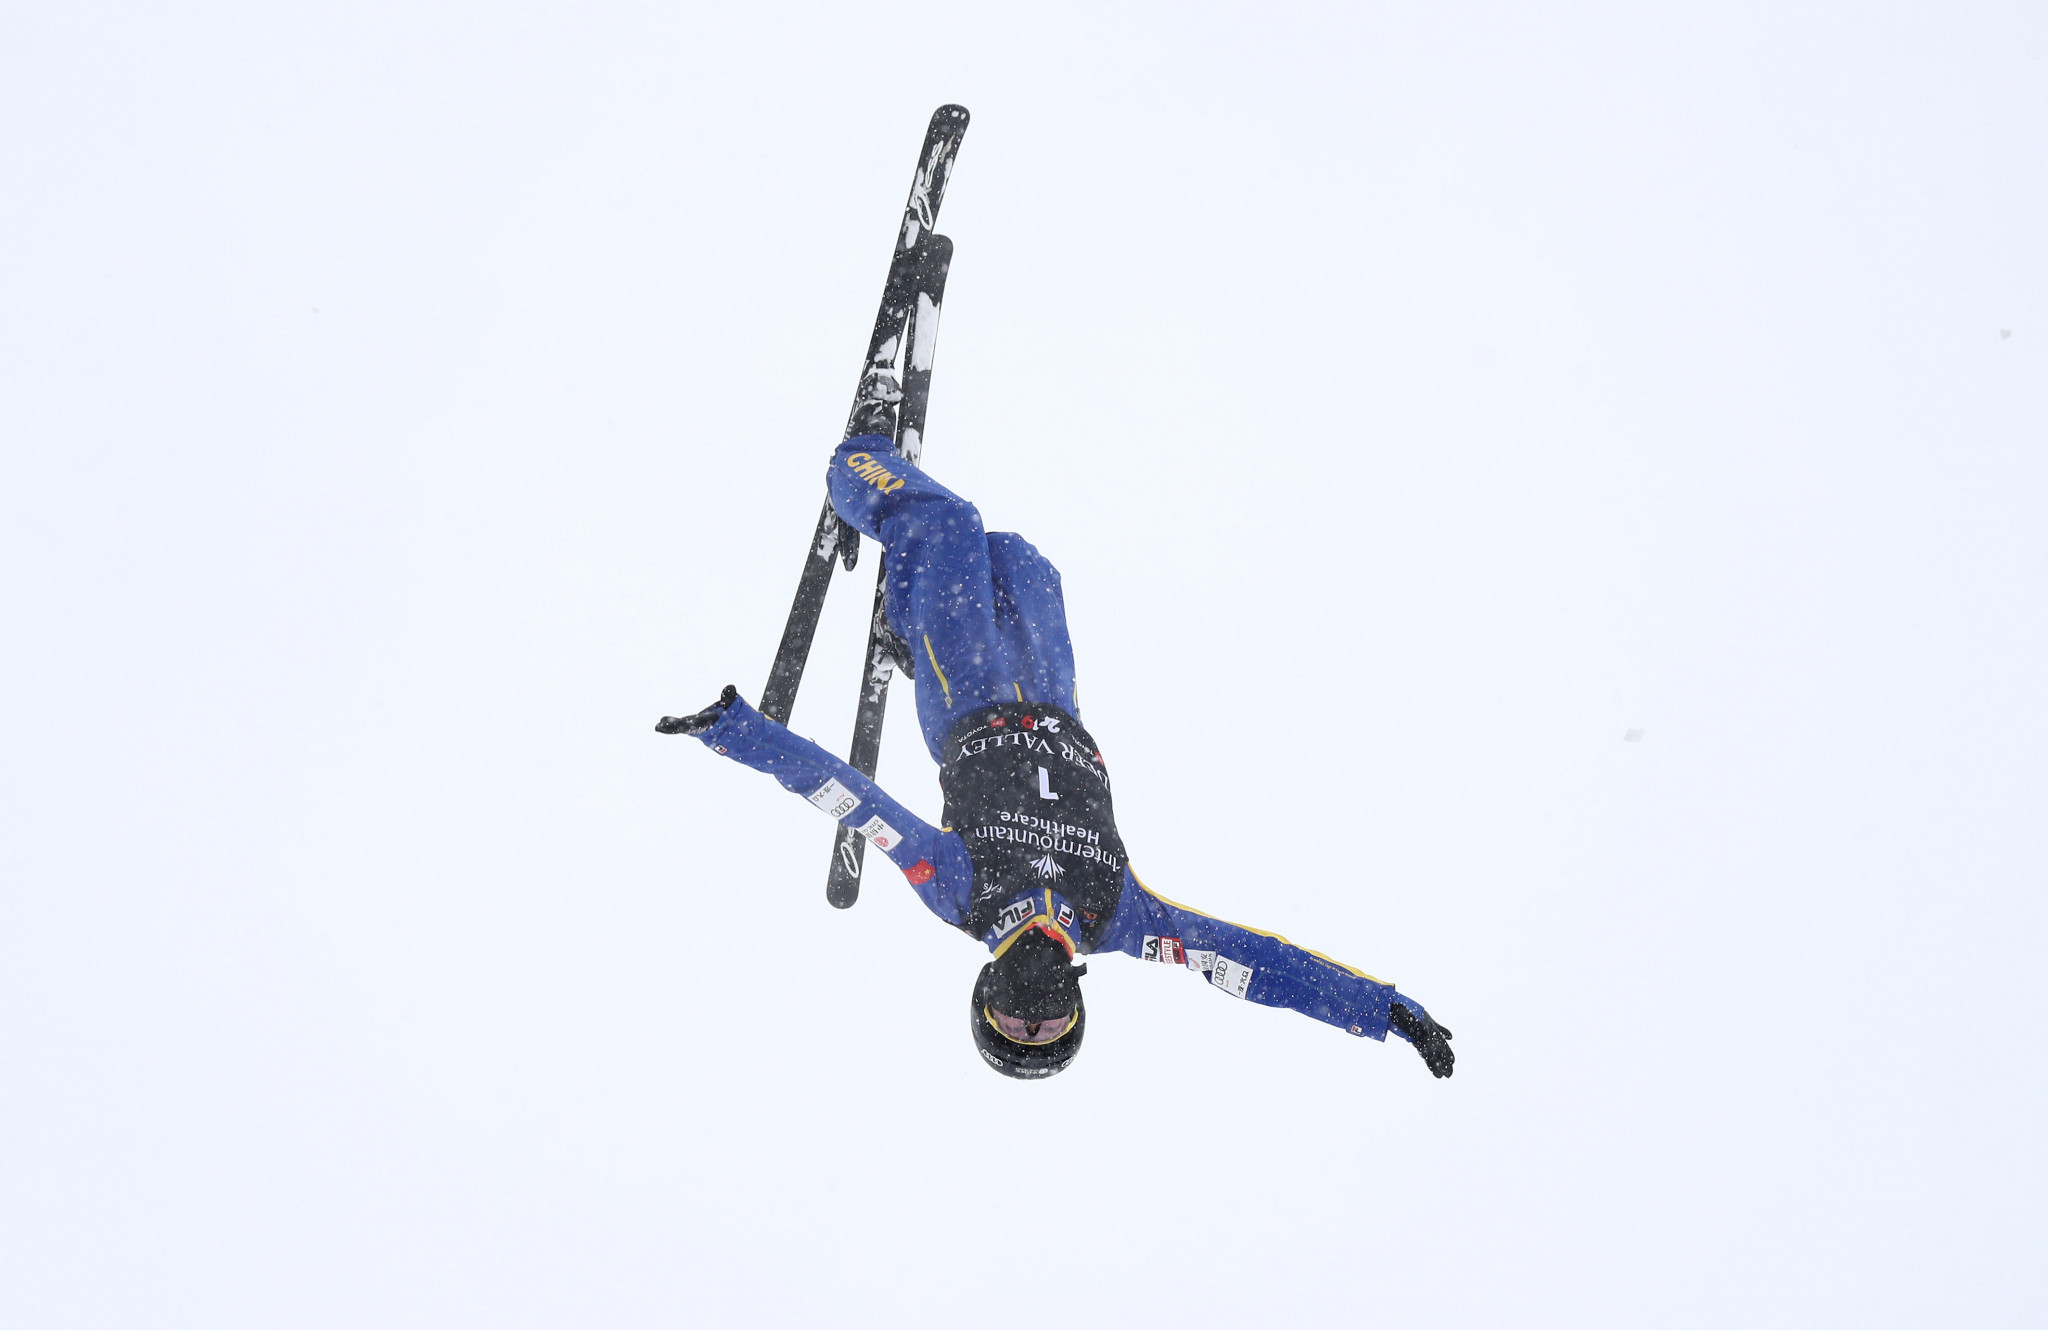 Xu and Wang wrap up overall titles at FIS Aerials World Cup